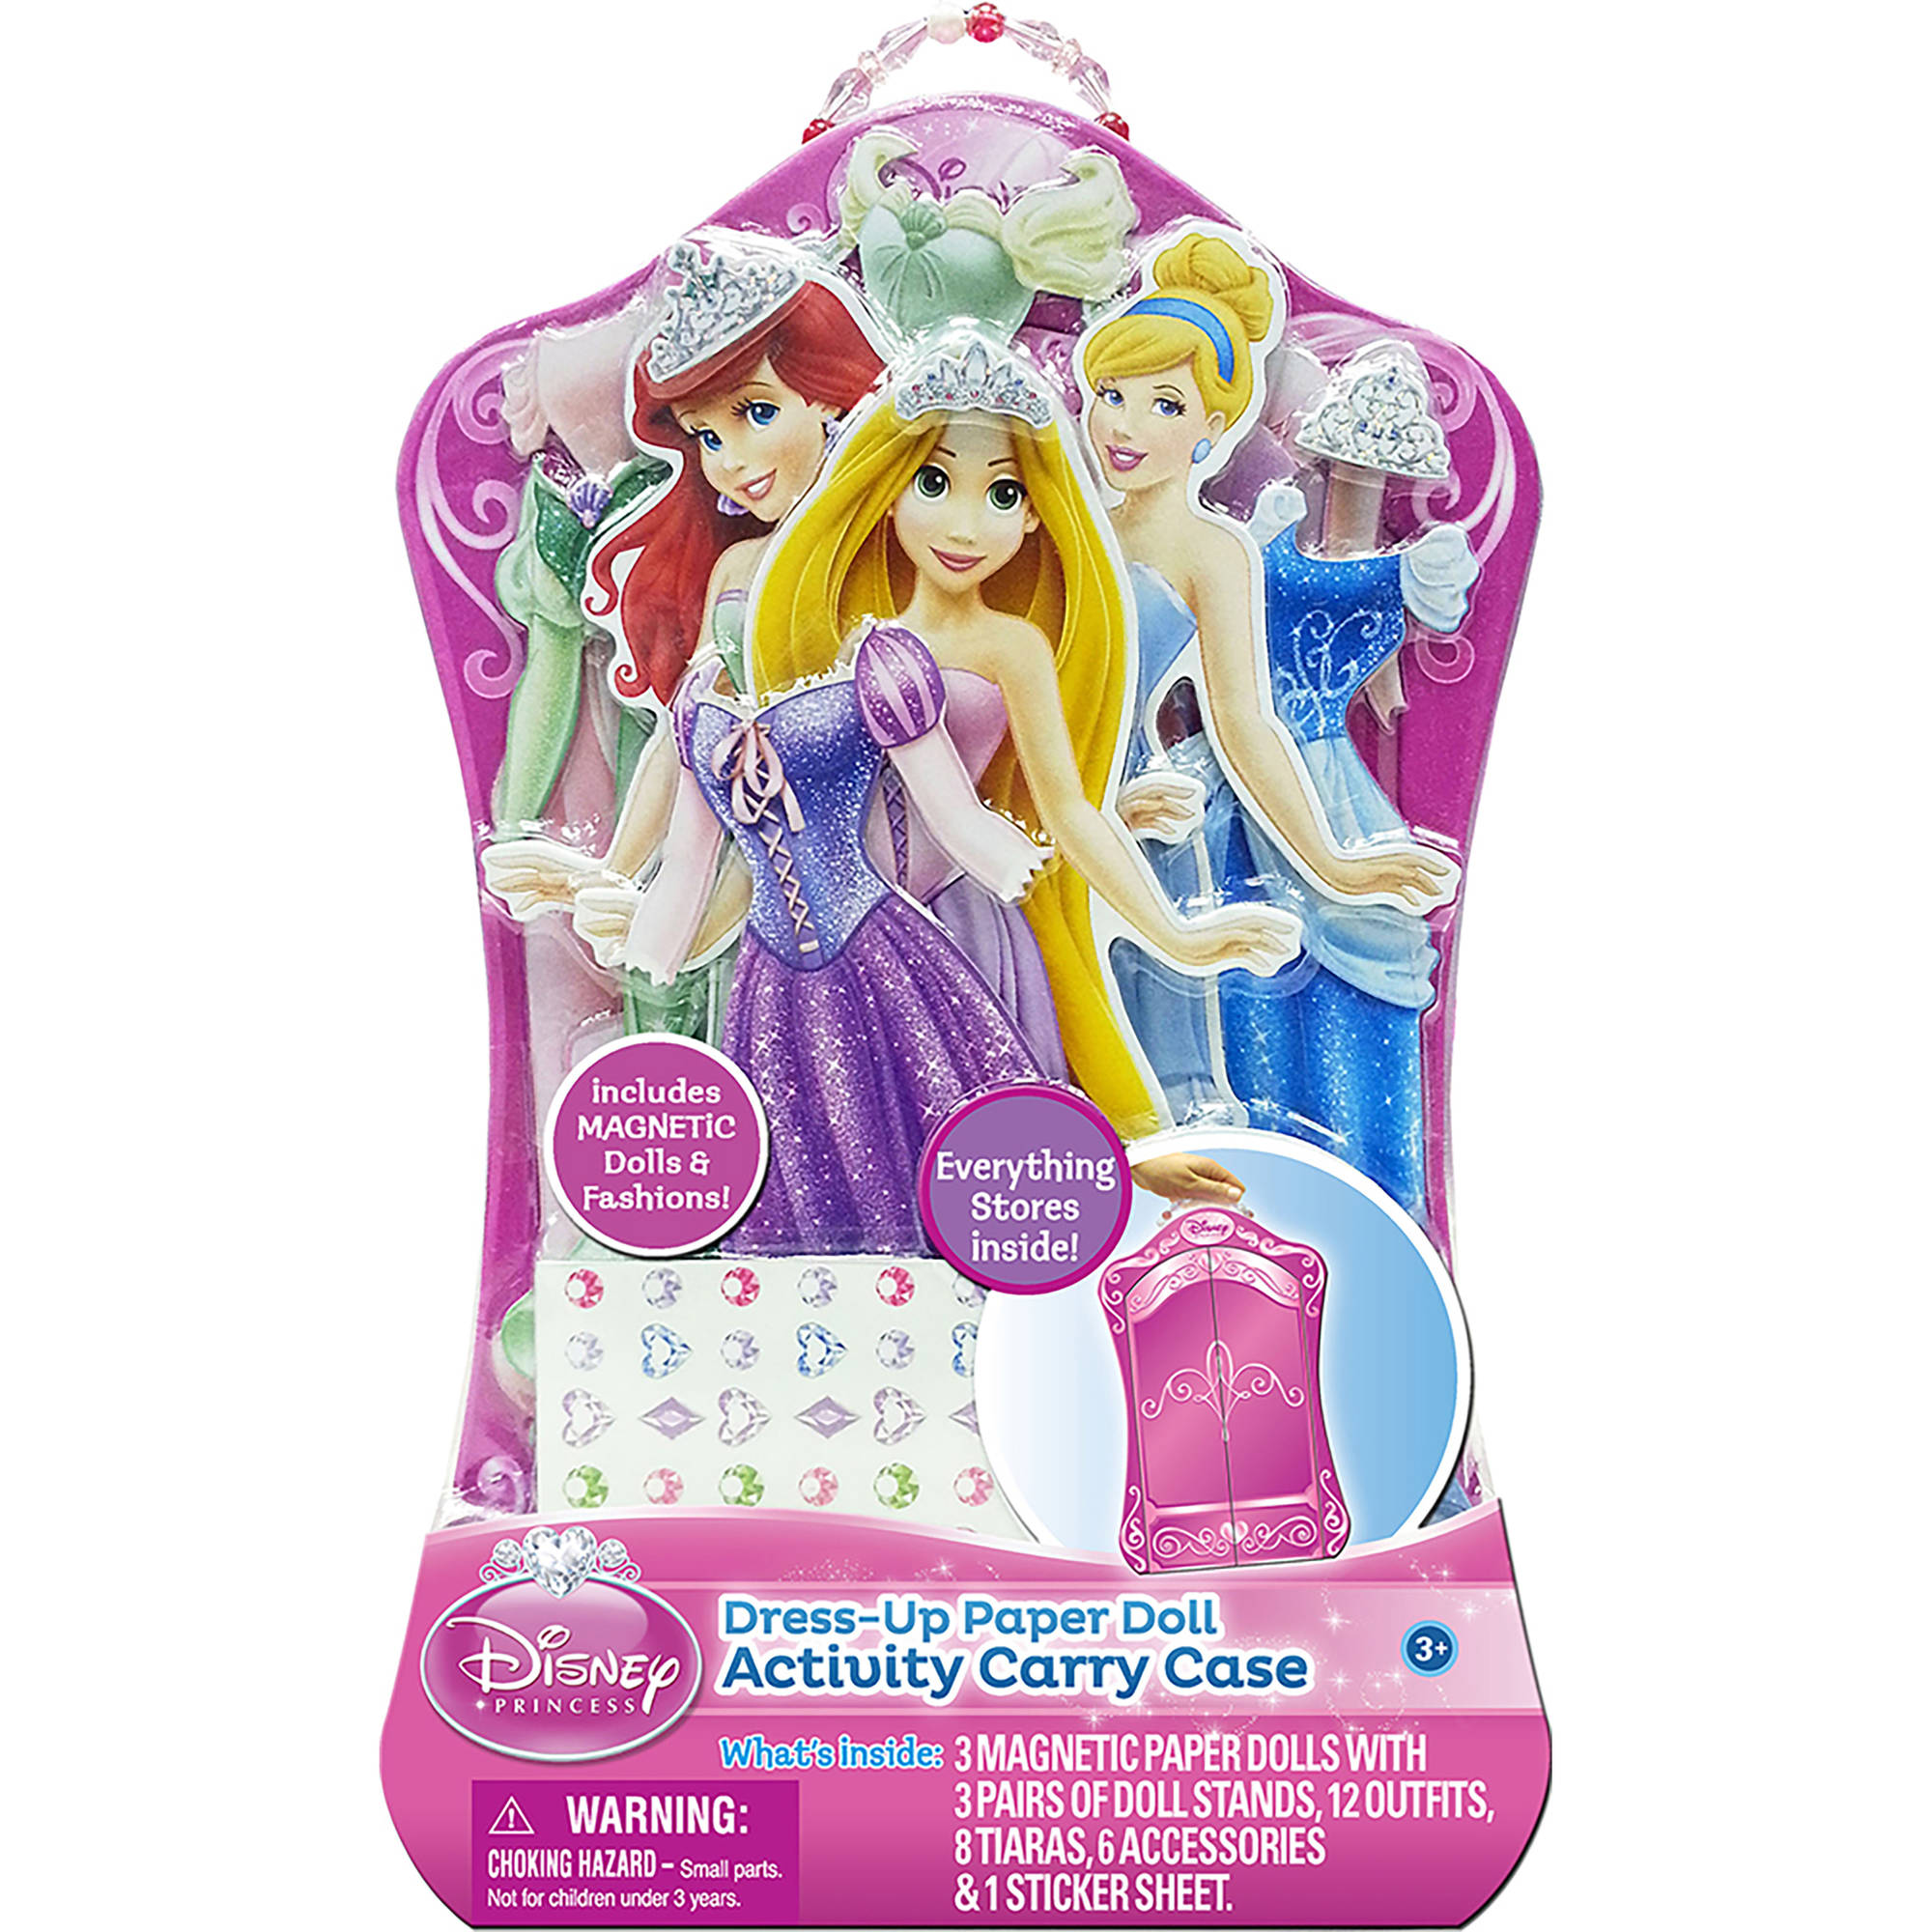 Princess Dress-Up Paper Doll Activity Carry Case